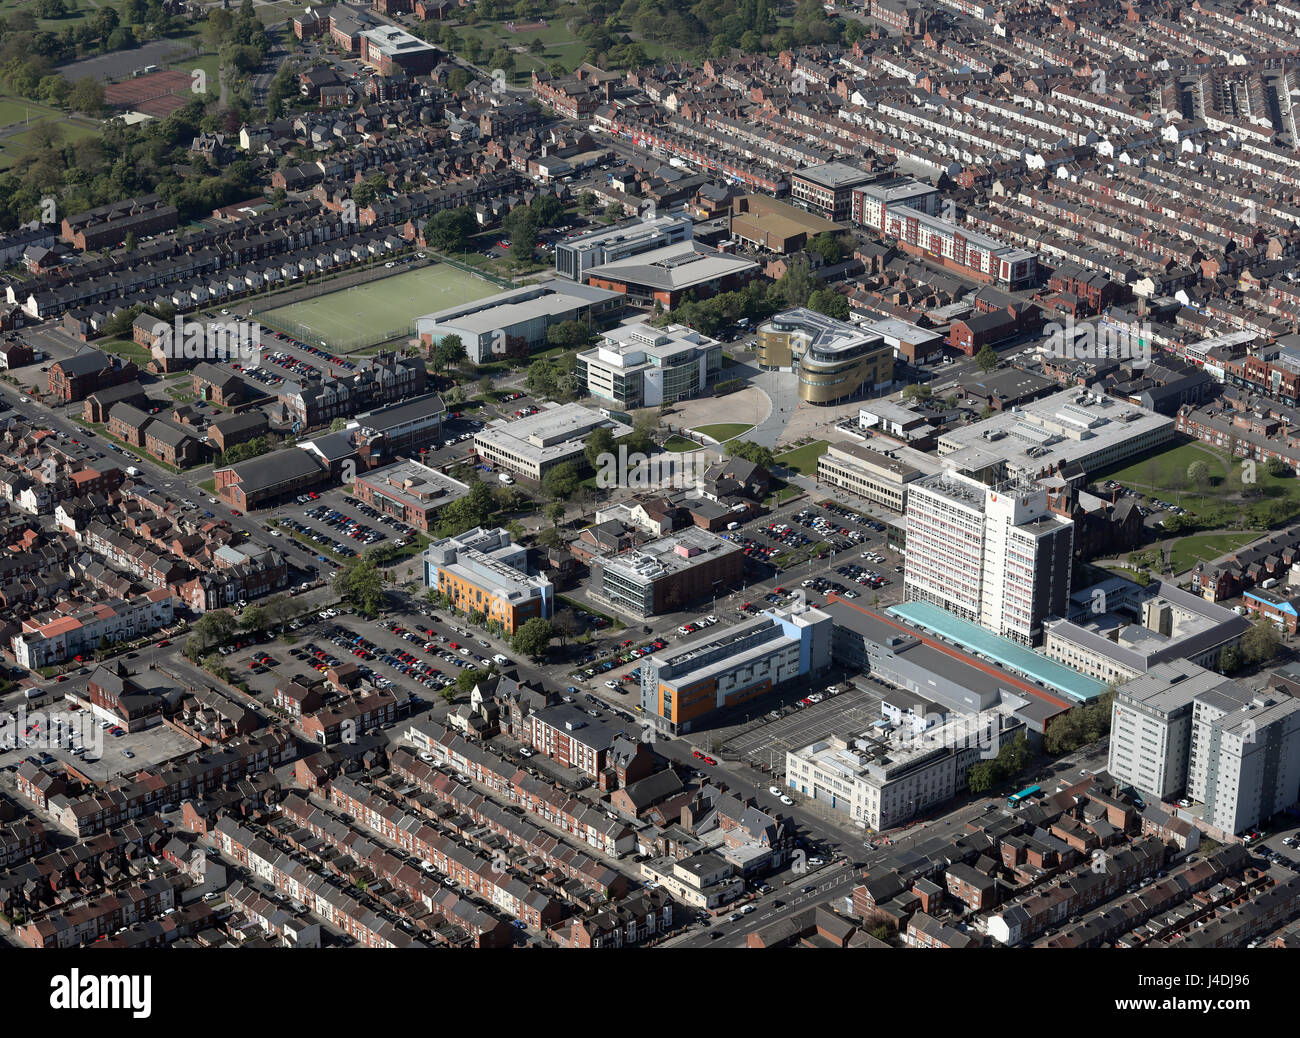 aerial view of Teesside University, Middlesbrough, UK Stock Photo